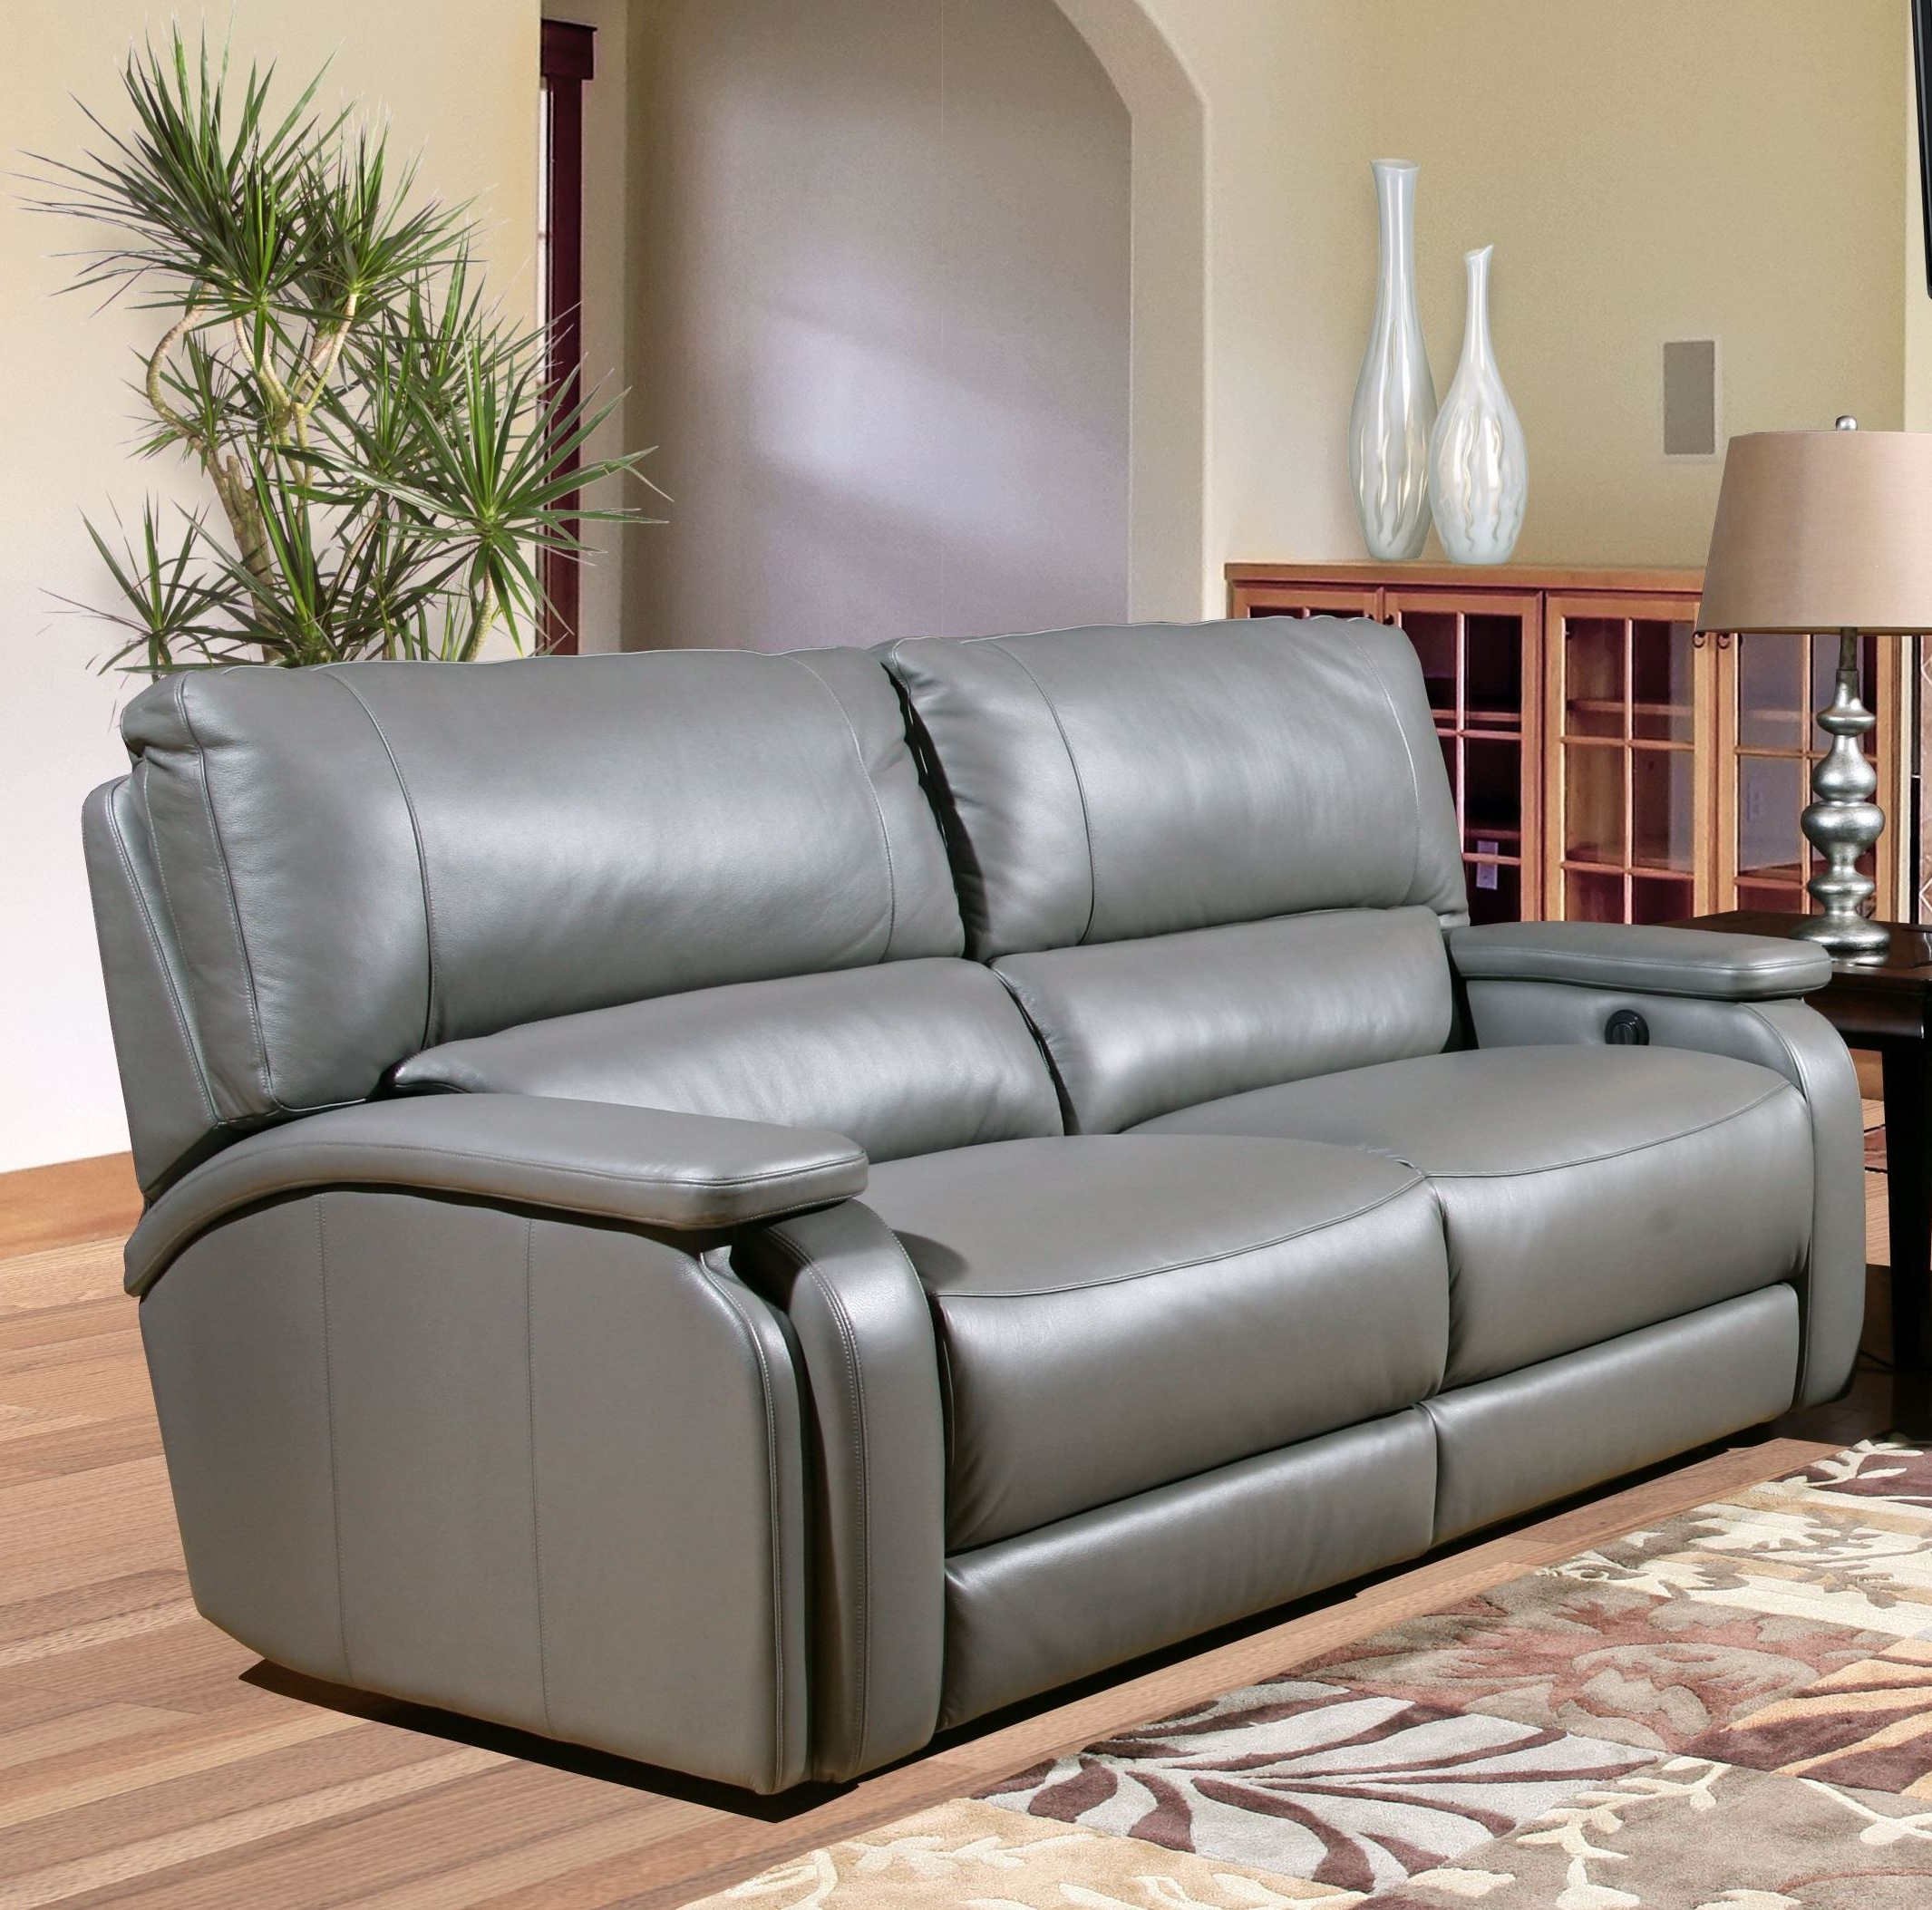 Most Recently Released Raven Power Reclining Sofas Inside Grisham Heron Dual Power Reclining Sofa From Parker Living (View 4 of 20)